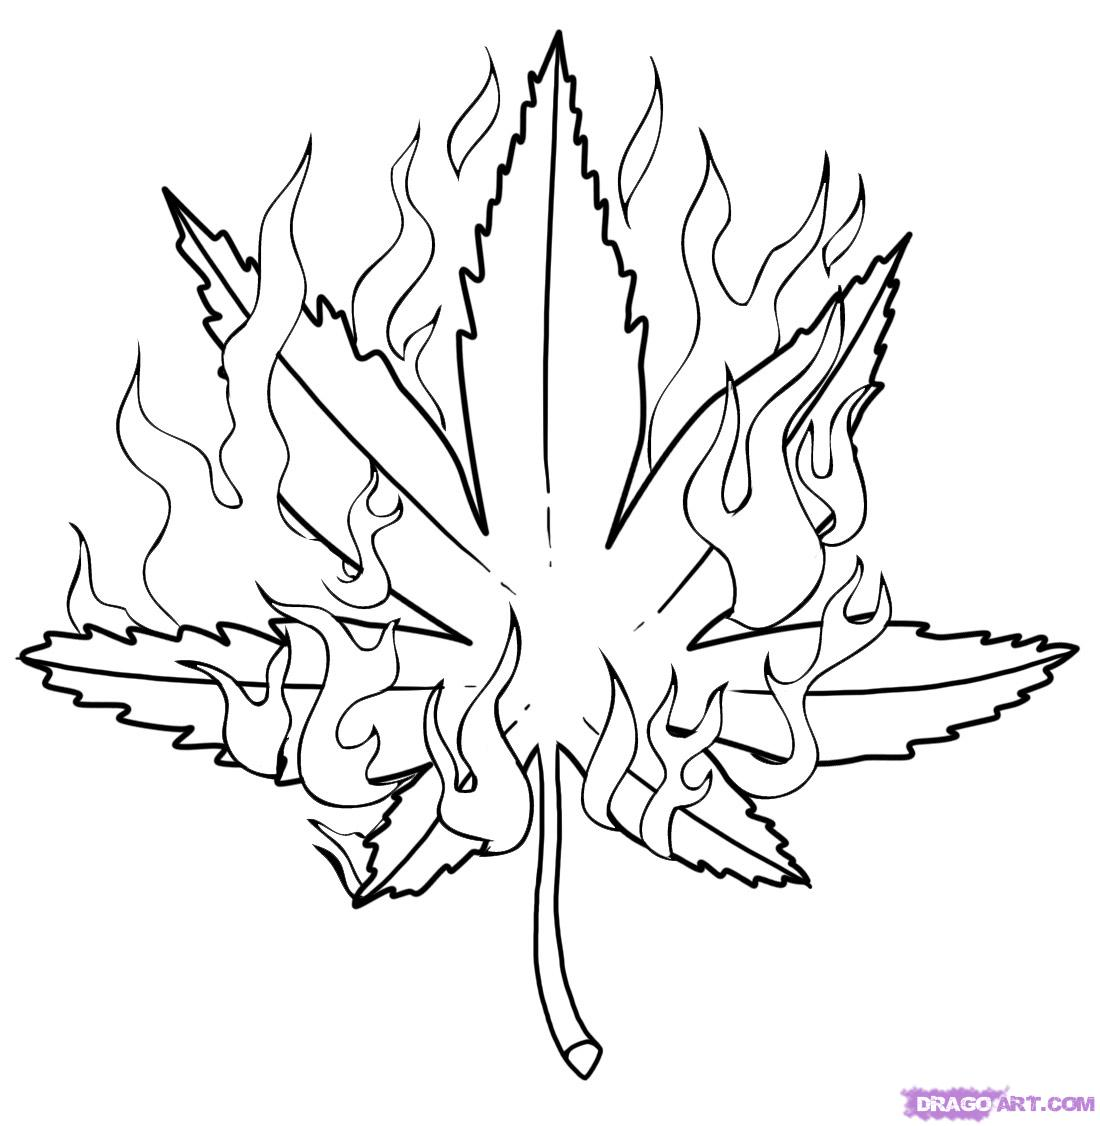 trippy pot leaf coloring pages 25 best fly high coloring images on pinterest coloring pages leaf pot trippy coloring